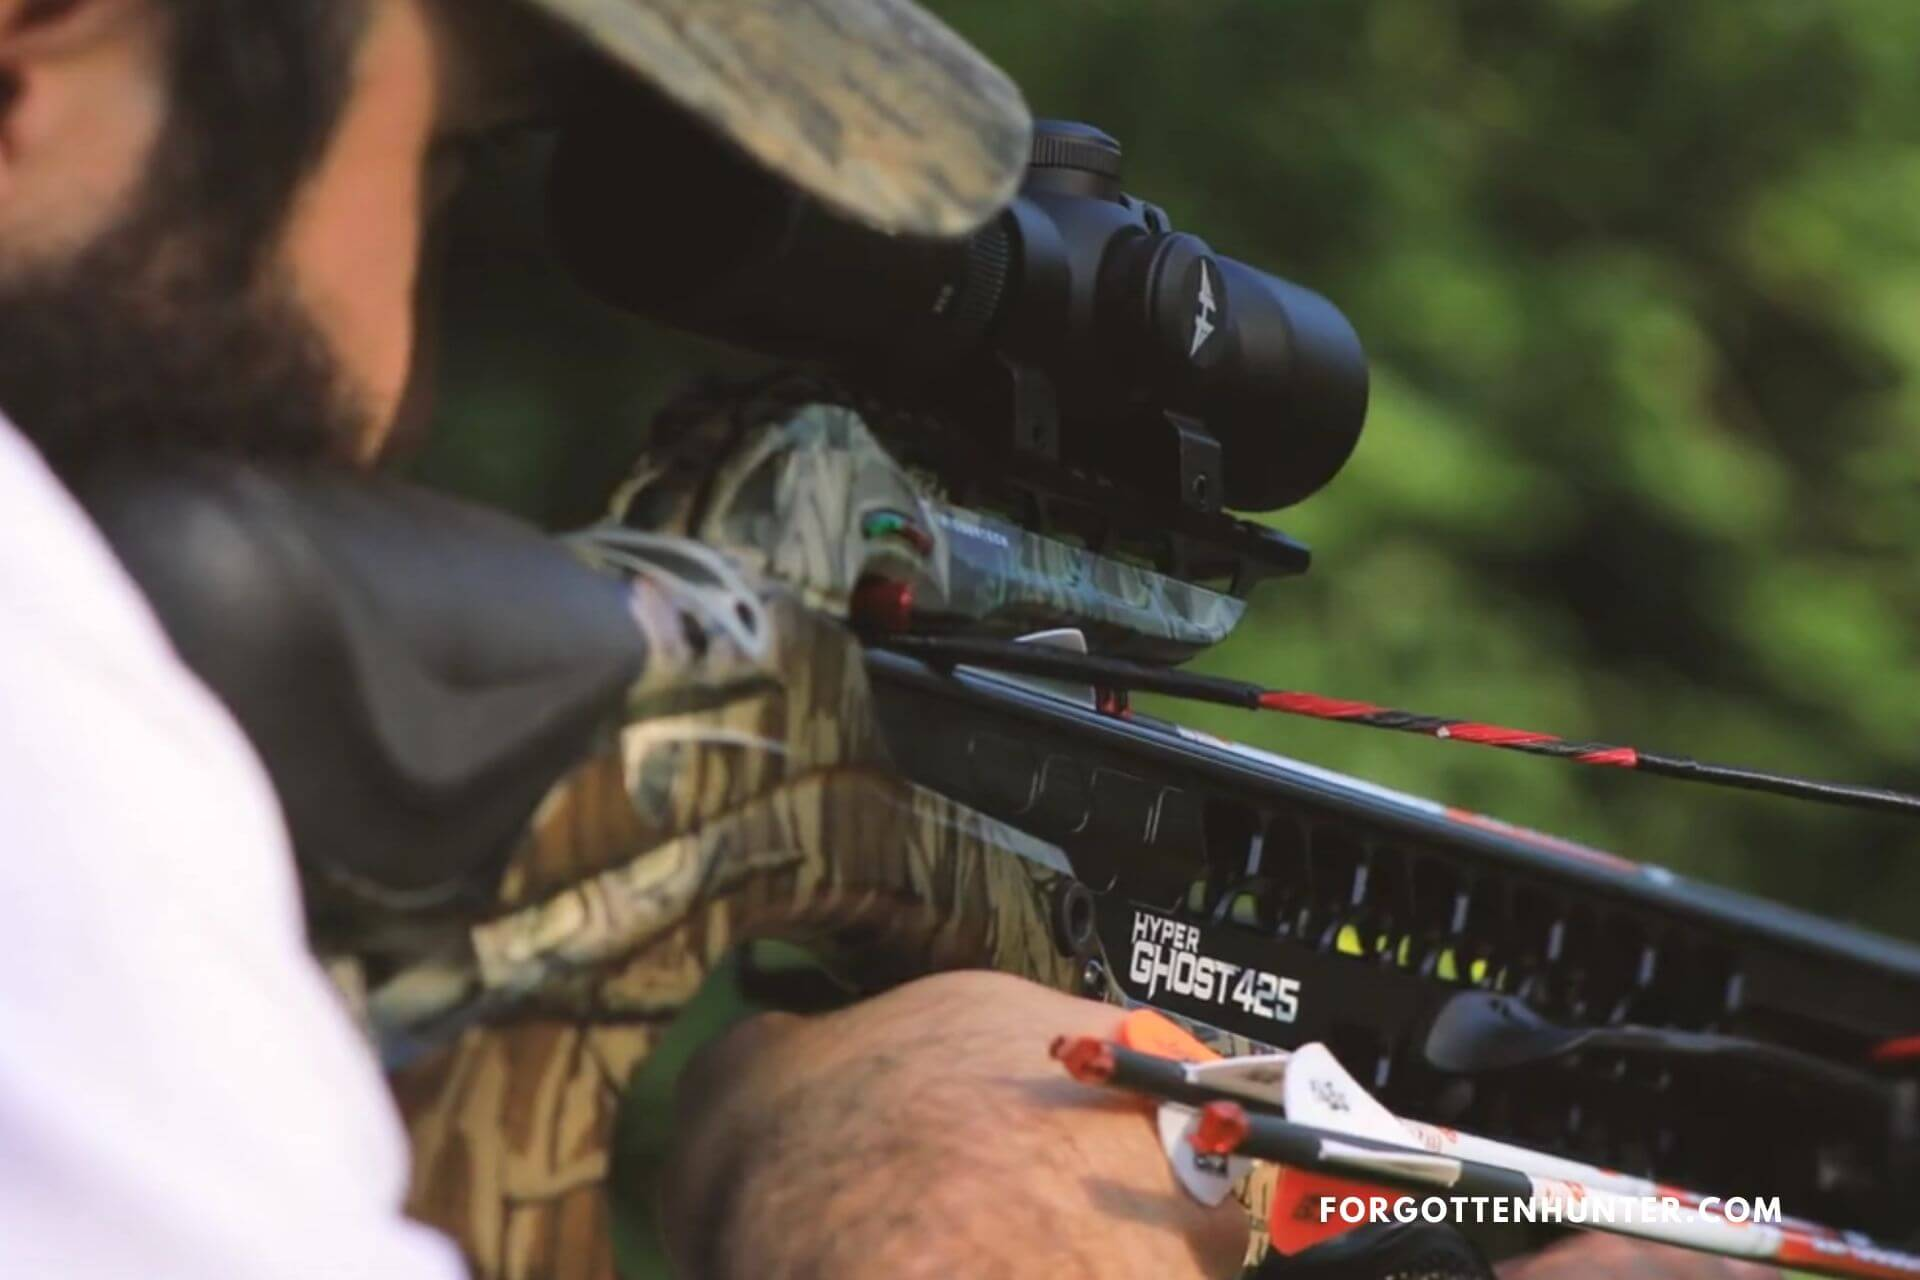 Barnett HyperGhost 425 Crossbow Review